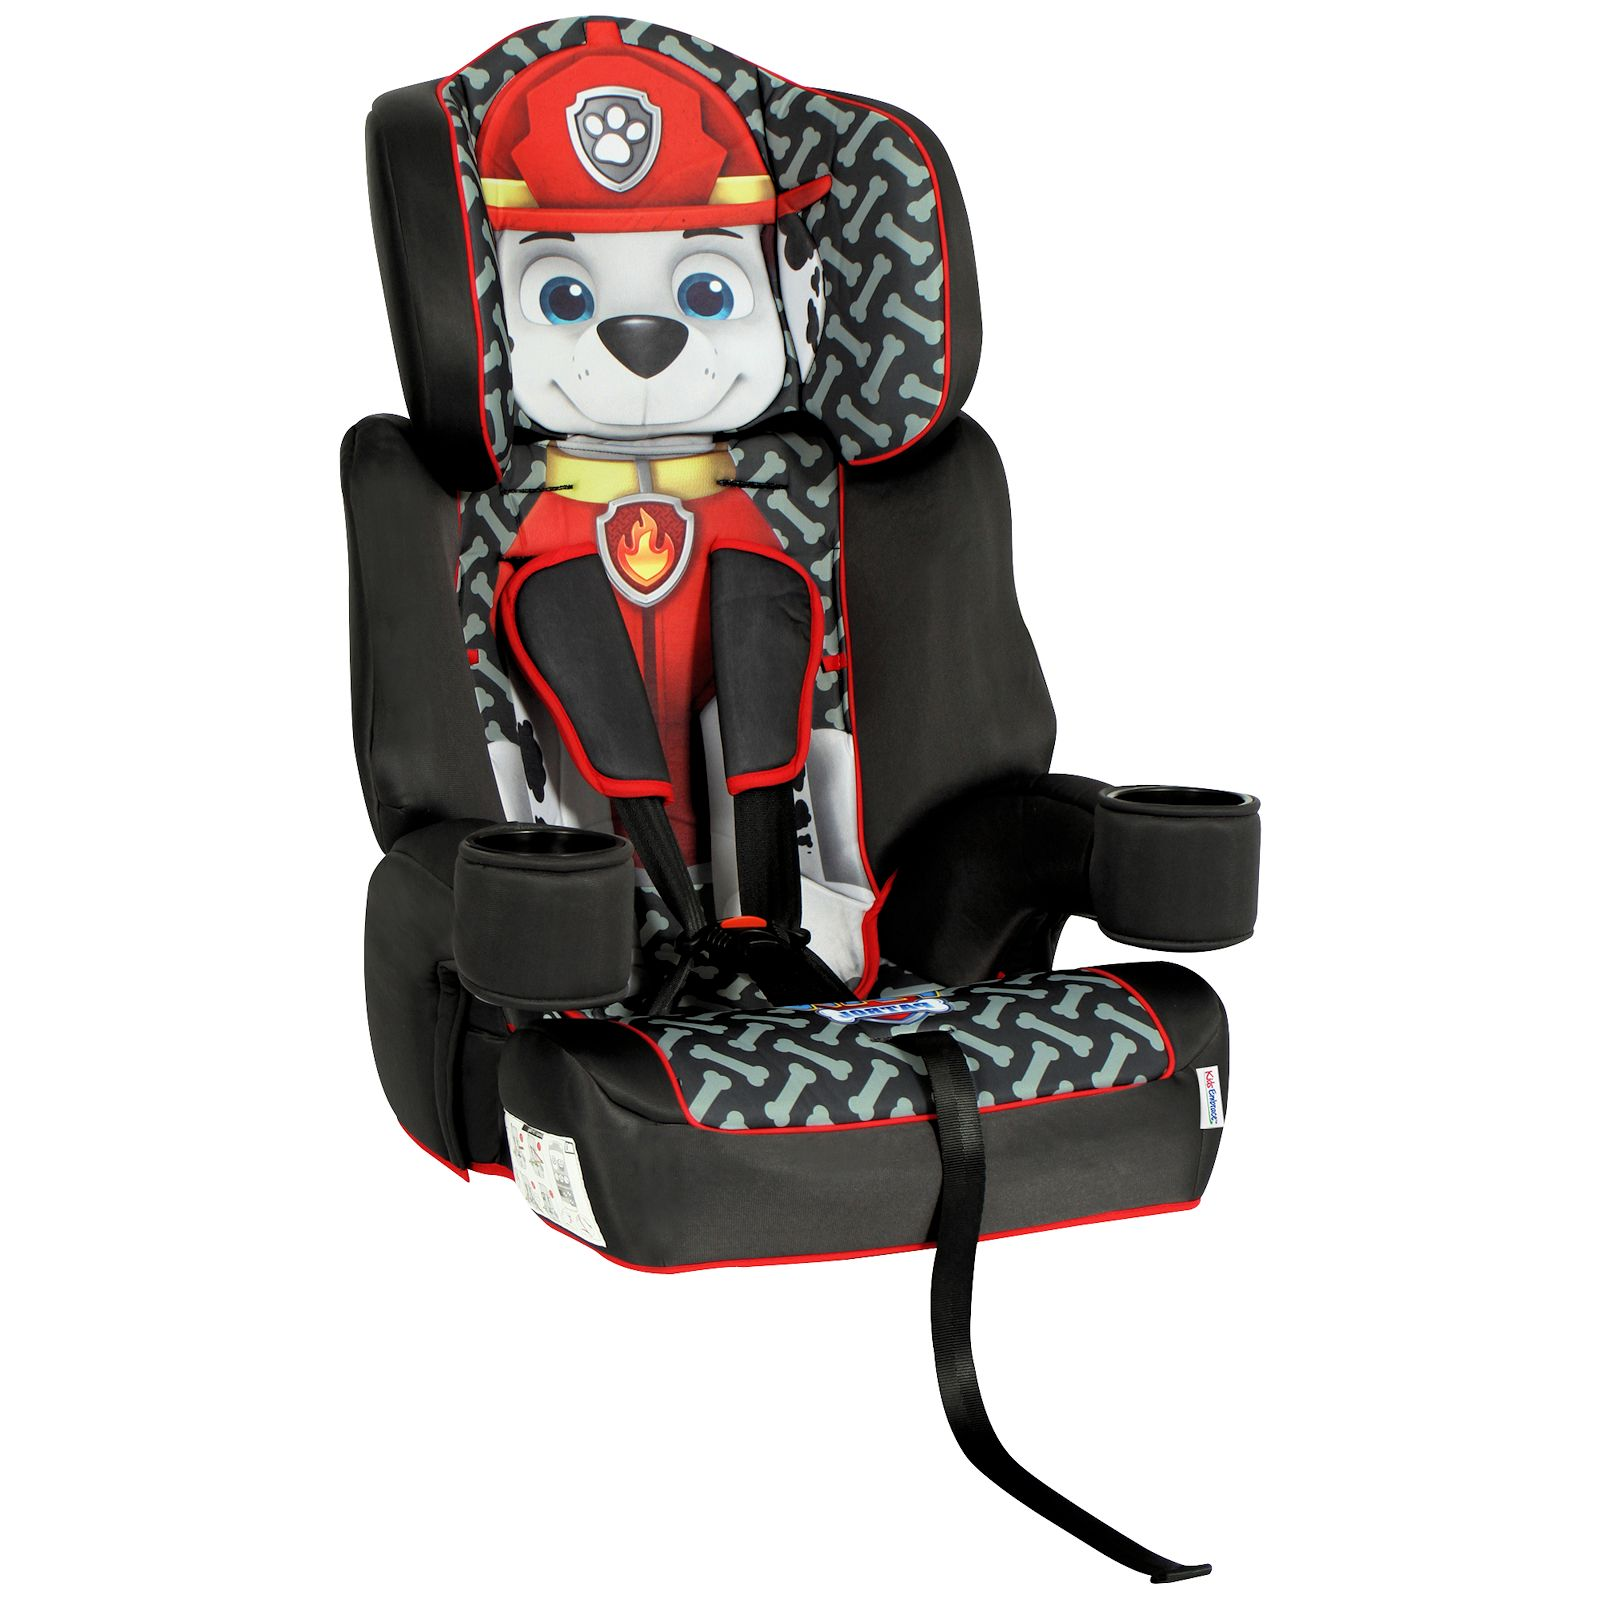 Kids Emce Group 1,2,3 Booster Car Seat - Paw Patrol (Marshall ...